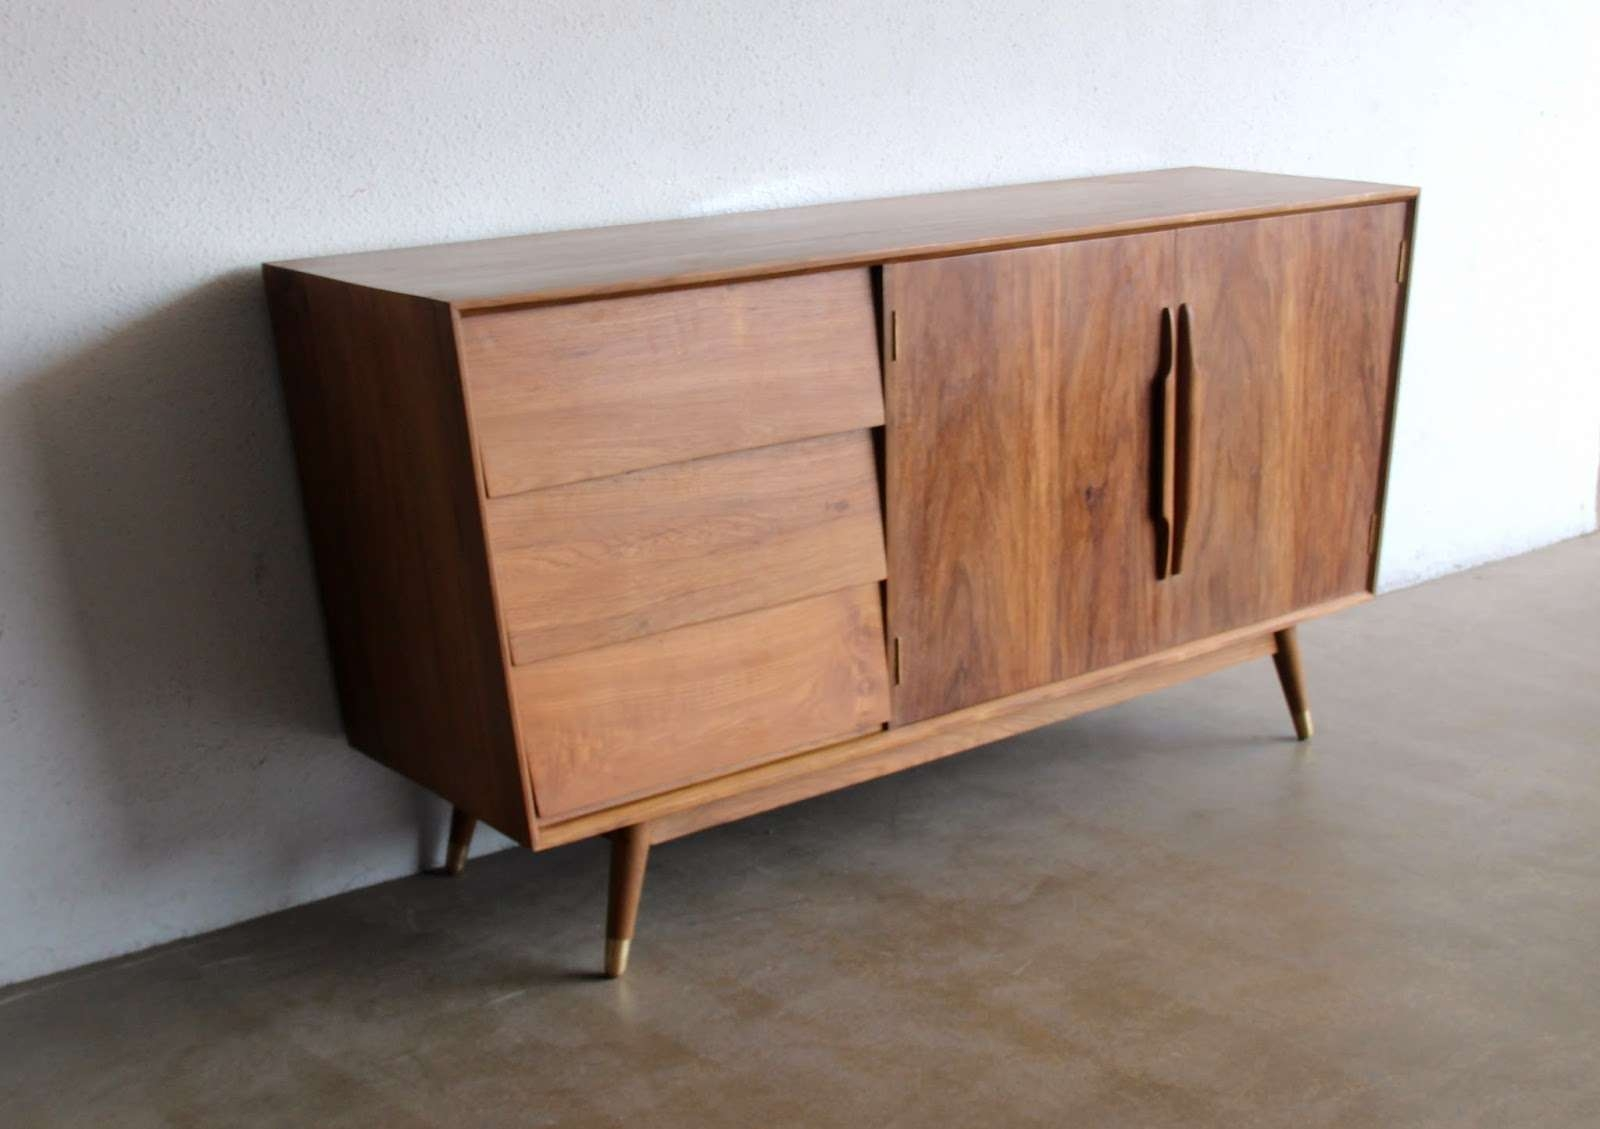 Second Charm Furniture – Mid Century Modern Influence | Bobs Furniture Throughout Mid Century Sideboards (View 16 of 20)